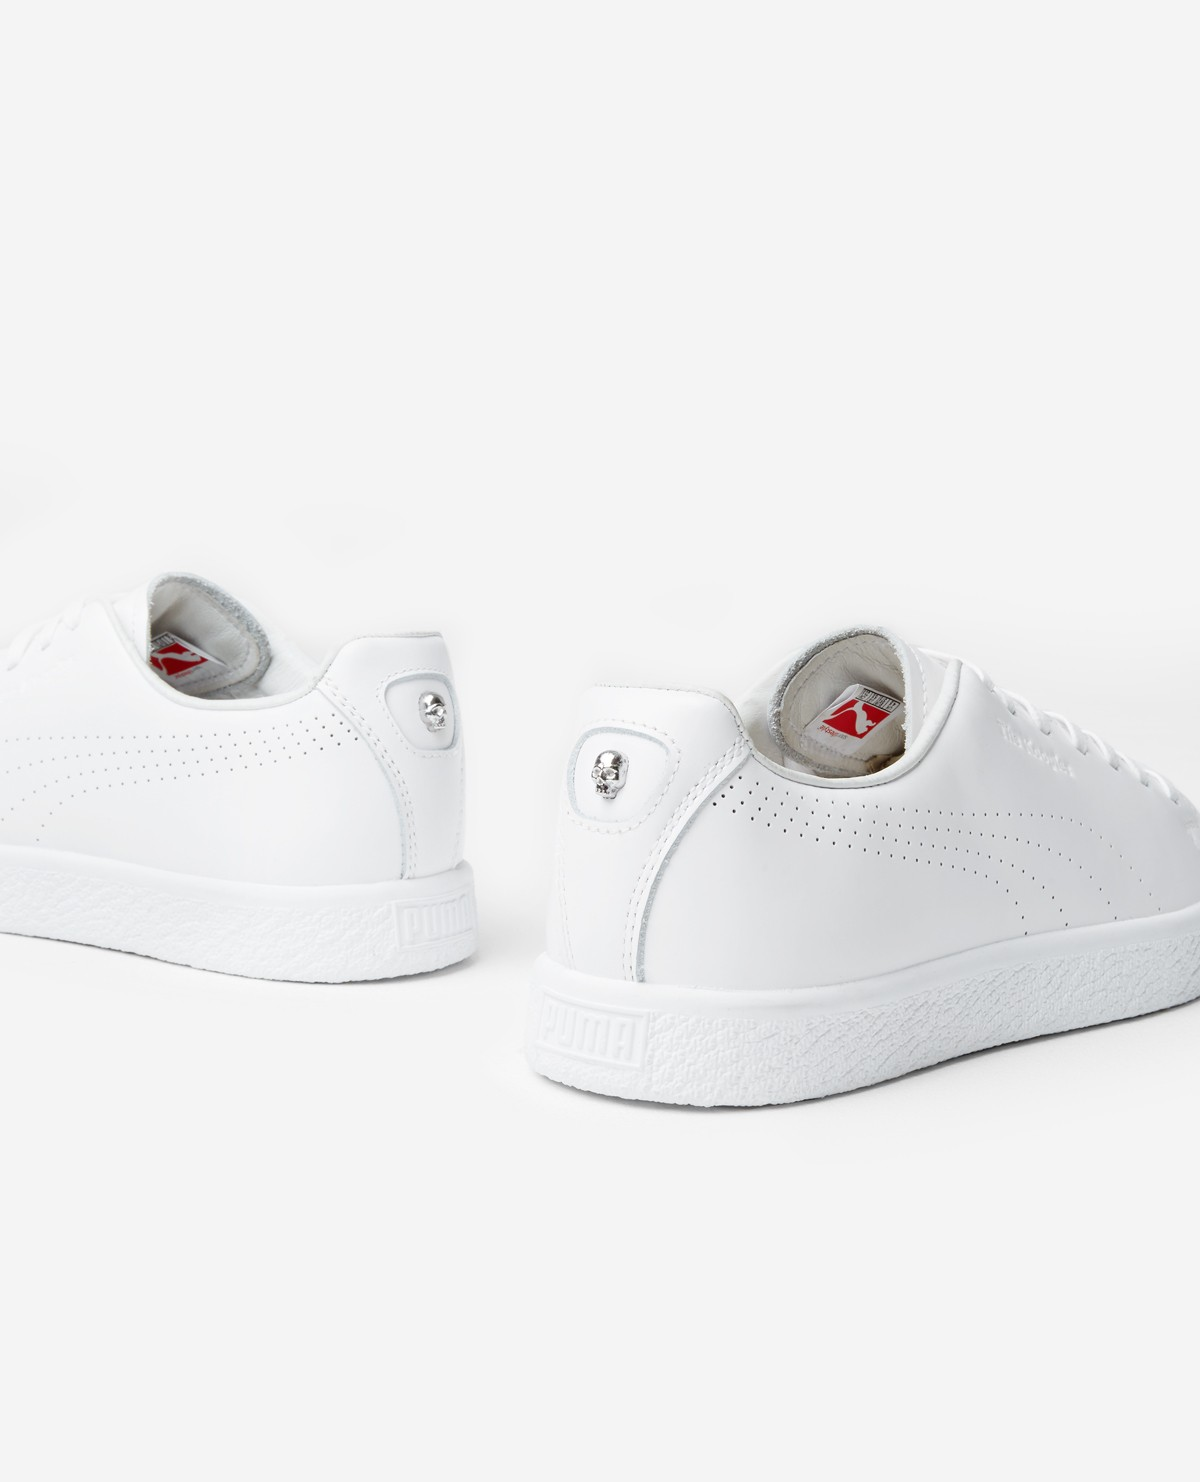 36db6522c79 The Kooples United States Official Website - White Puma x The Kooples Clyde  sneakers